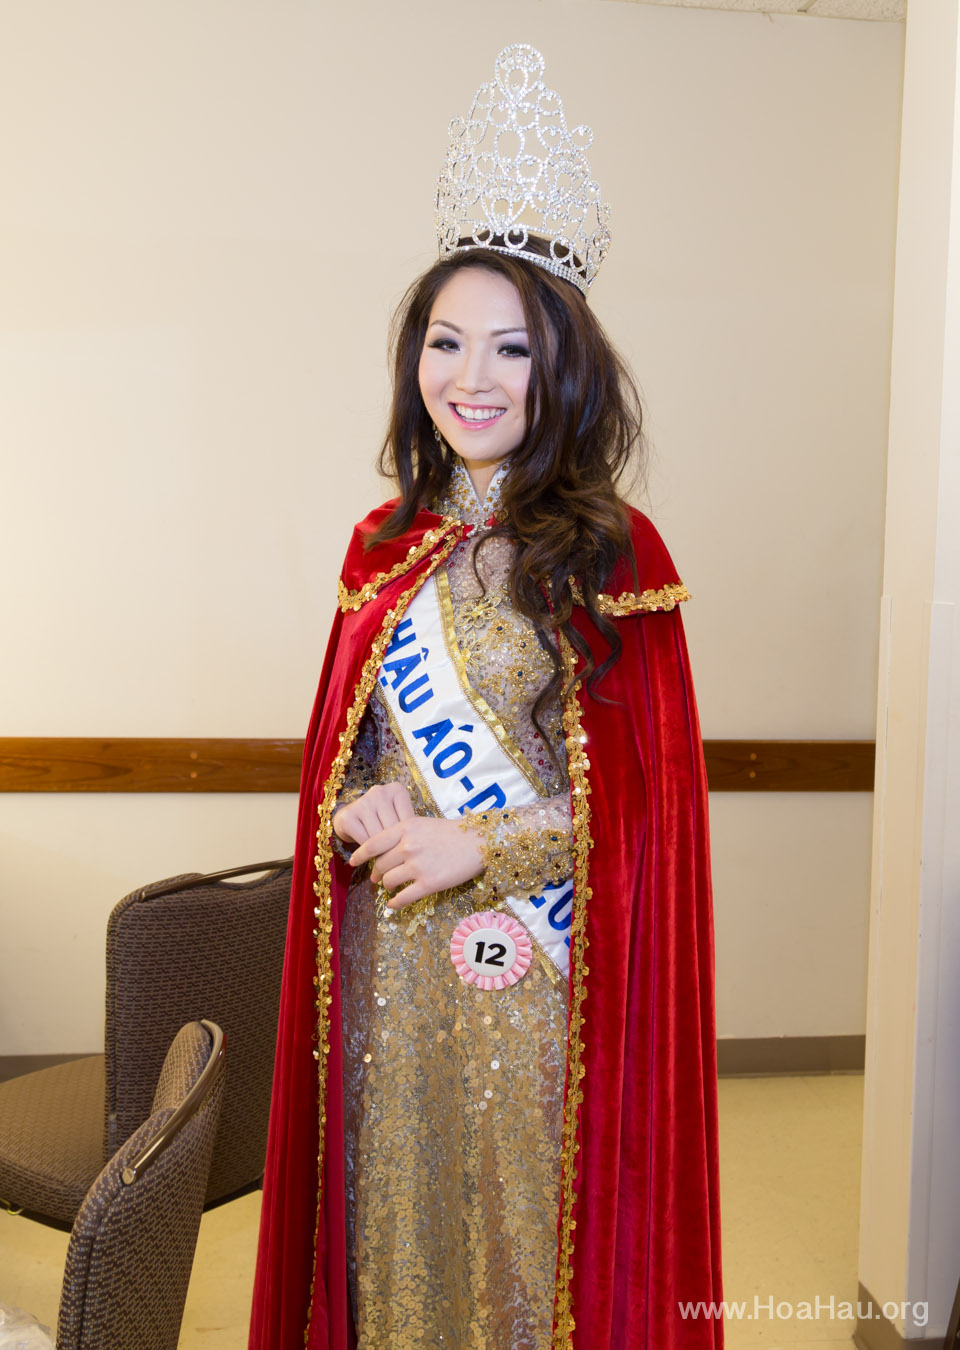 Miss Vietnam of Northern California 2014 - Hoa Hau Ao Dai Bac Cali 2014 - Behind the Scenes - Image 331